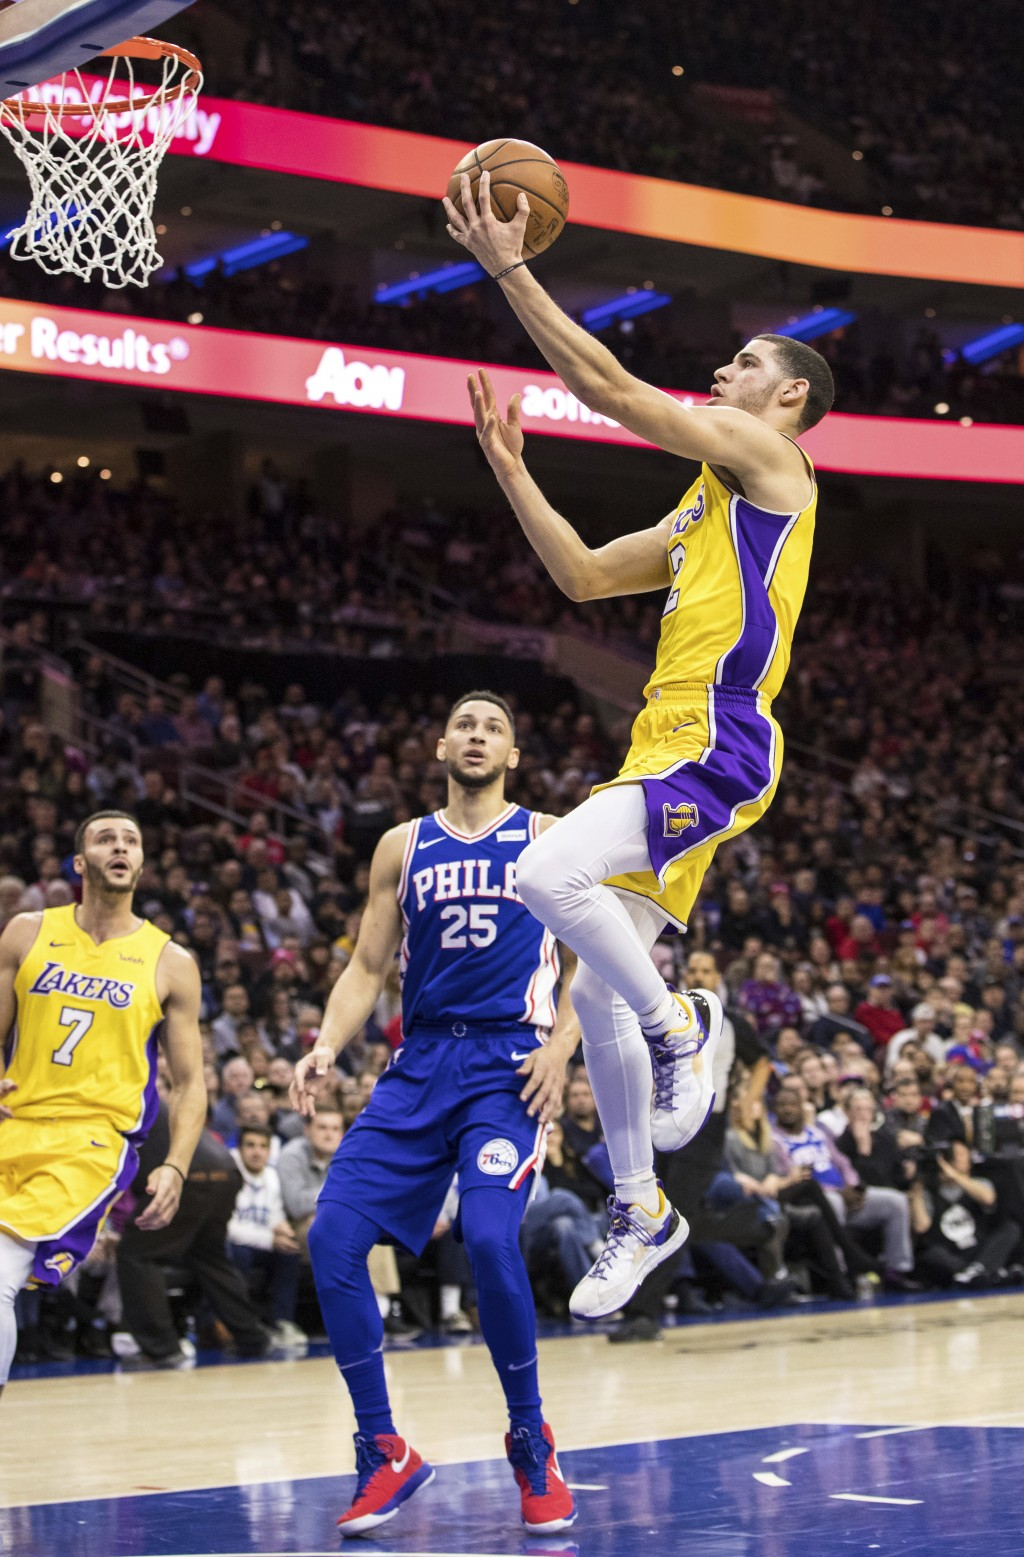 Los Angeles Lakers Lonzo Ball, right, goes up to shoot as Philadelphia 76ers Ben Simmons, left, of Australia, looks on during the first half of an NBA